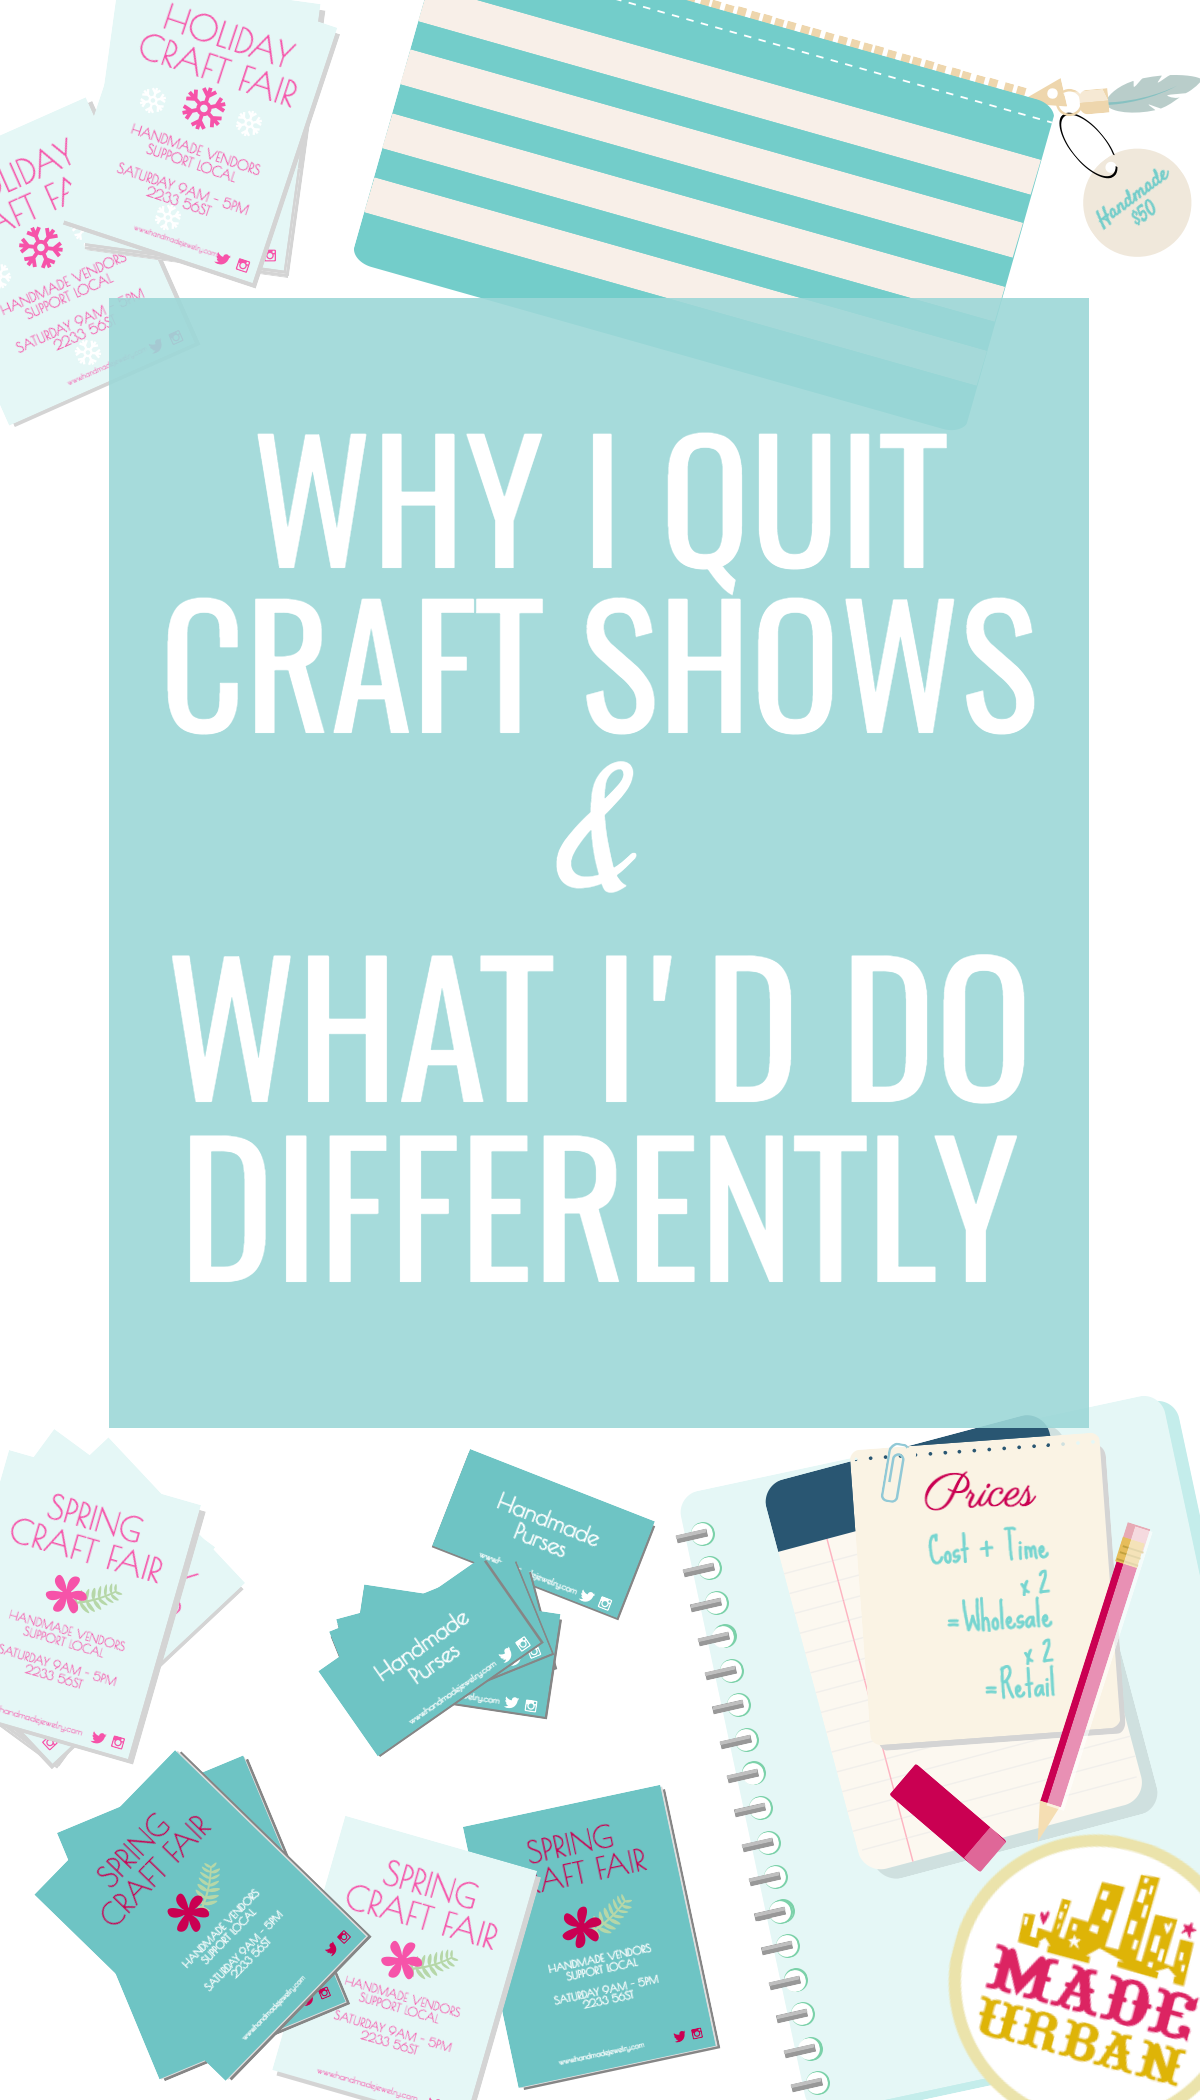 Craft shows can wear a small handmade business owner out if not planned properly. These are the lessons I wish I knew when I started selling at craft shows.